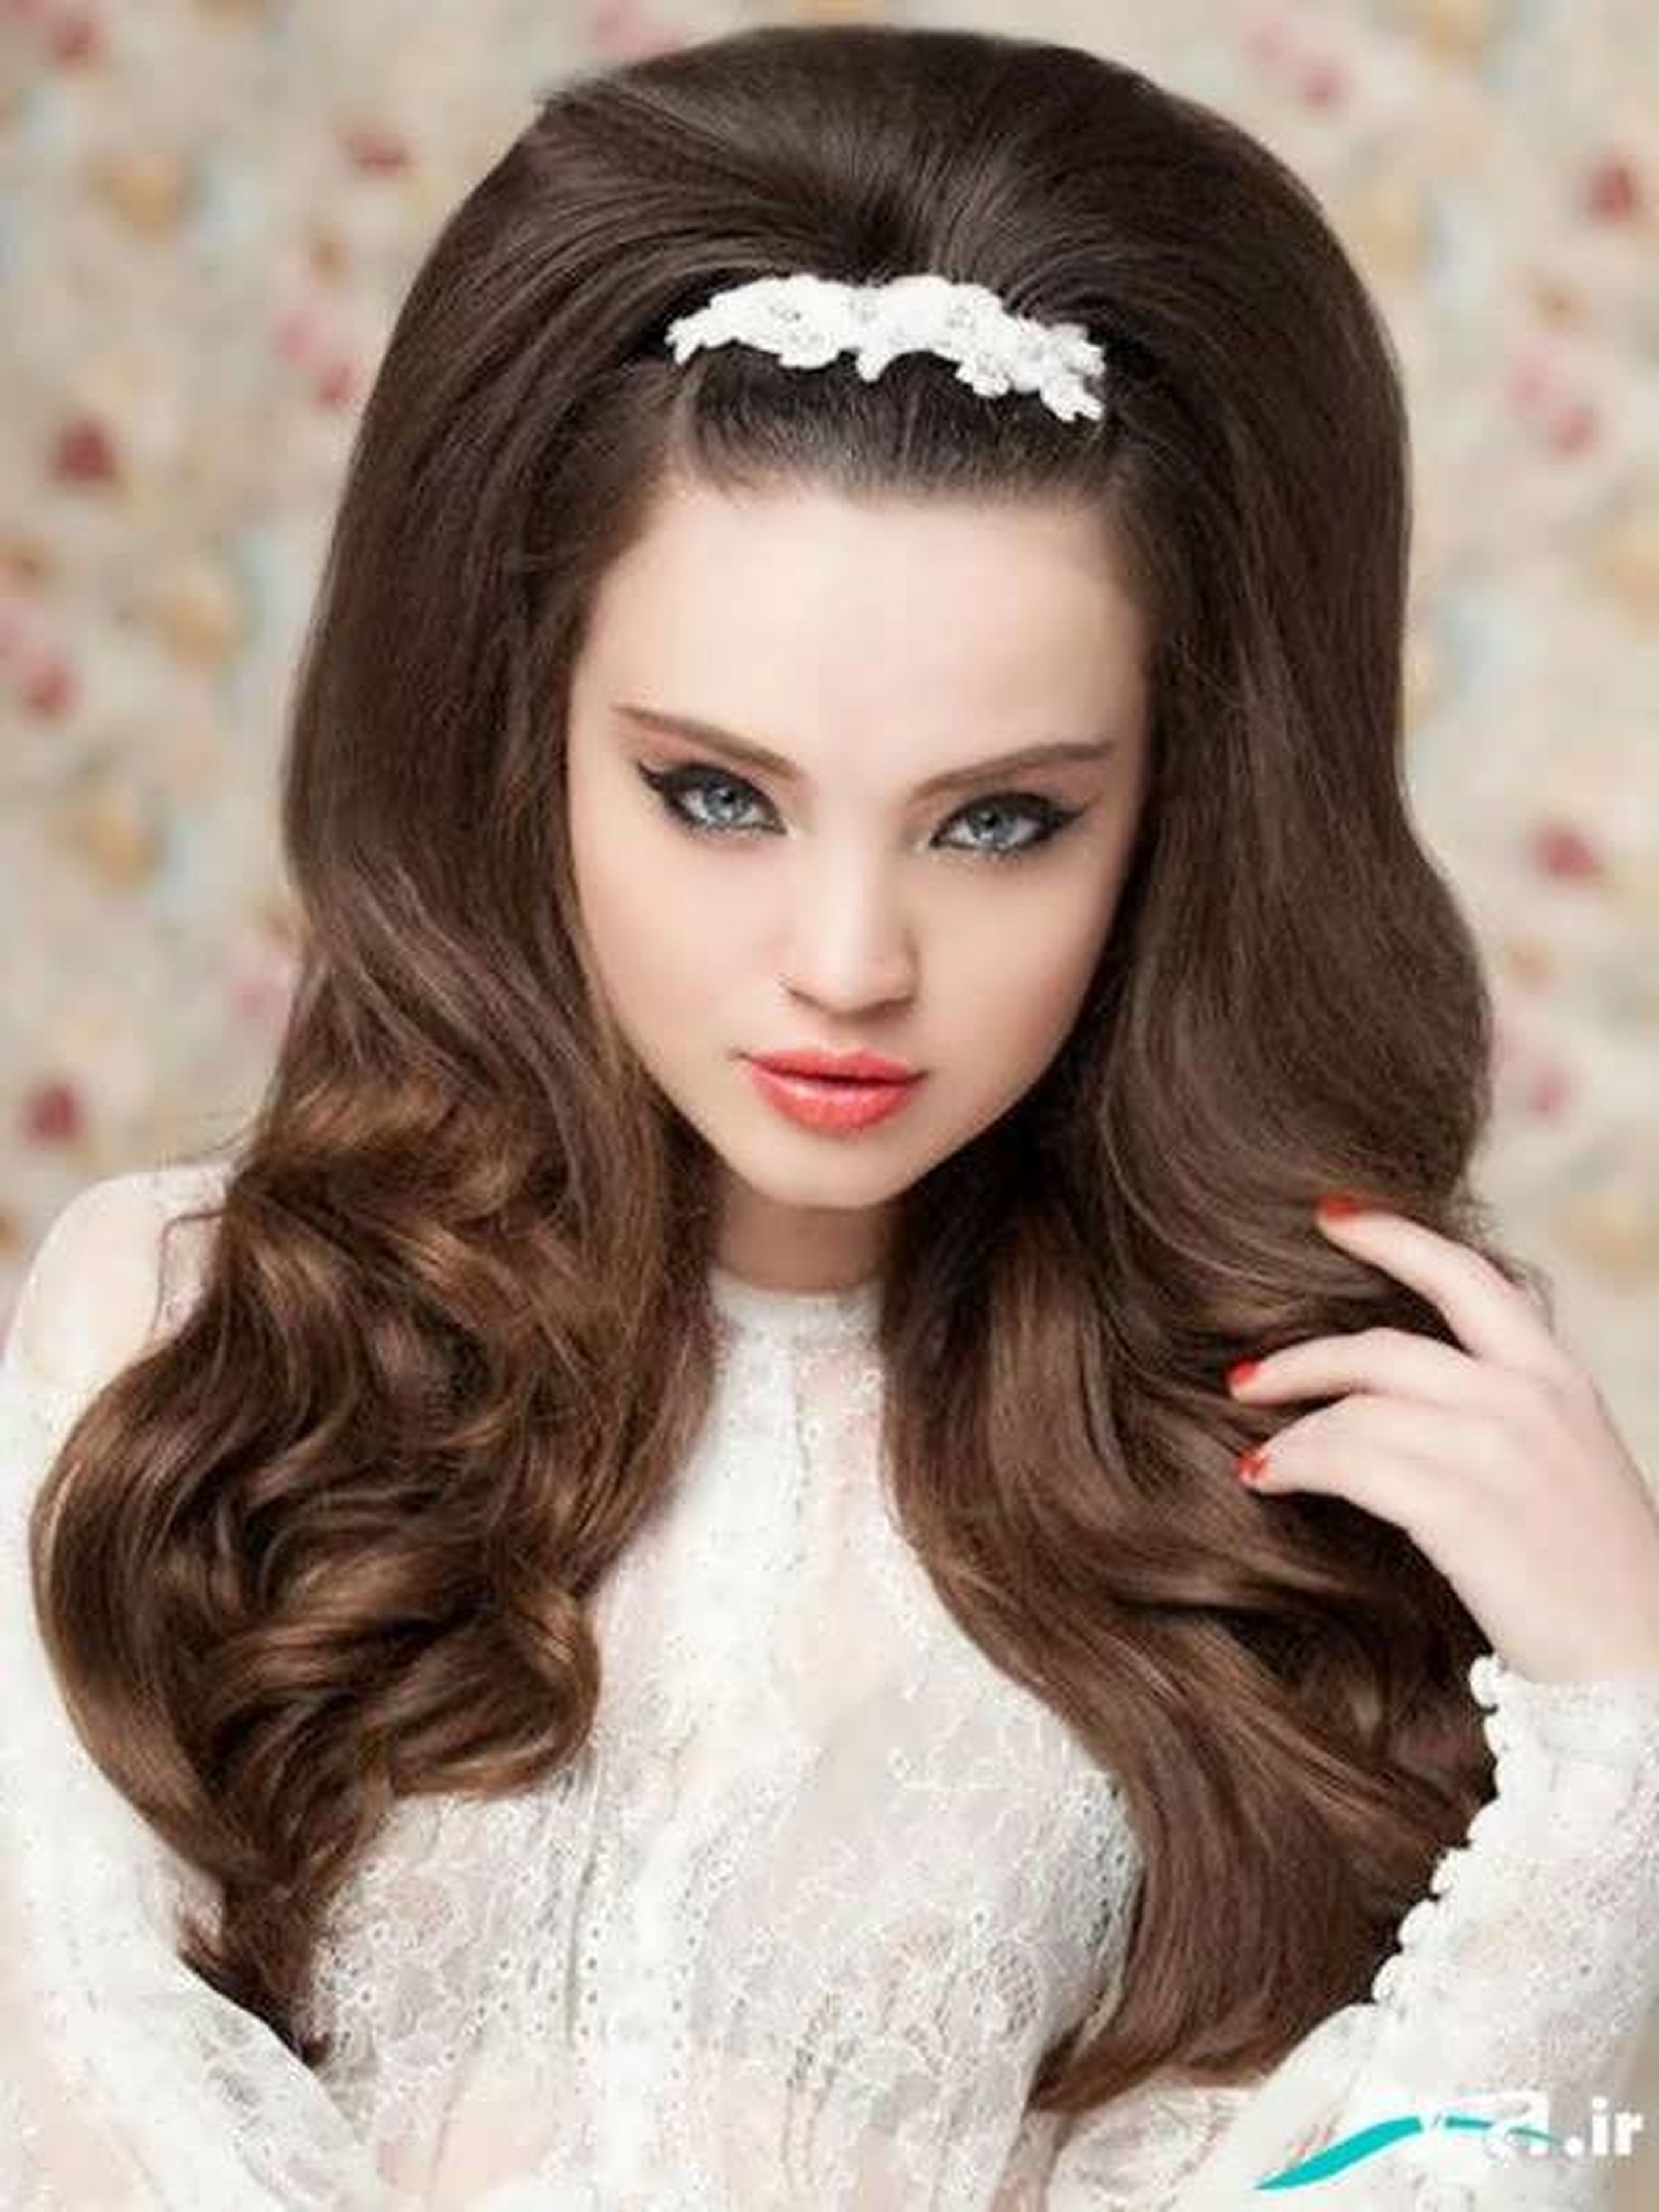 long hair, portrait, beauty, only women, brown hair, fashion, one young woman only, beautiful people, one person, glamour, one woman only, young adult, looking at camera, beautiful woman, elegance, adult, adults only, people, indoors, women, close-up, human body part, tiara, hair salon, day